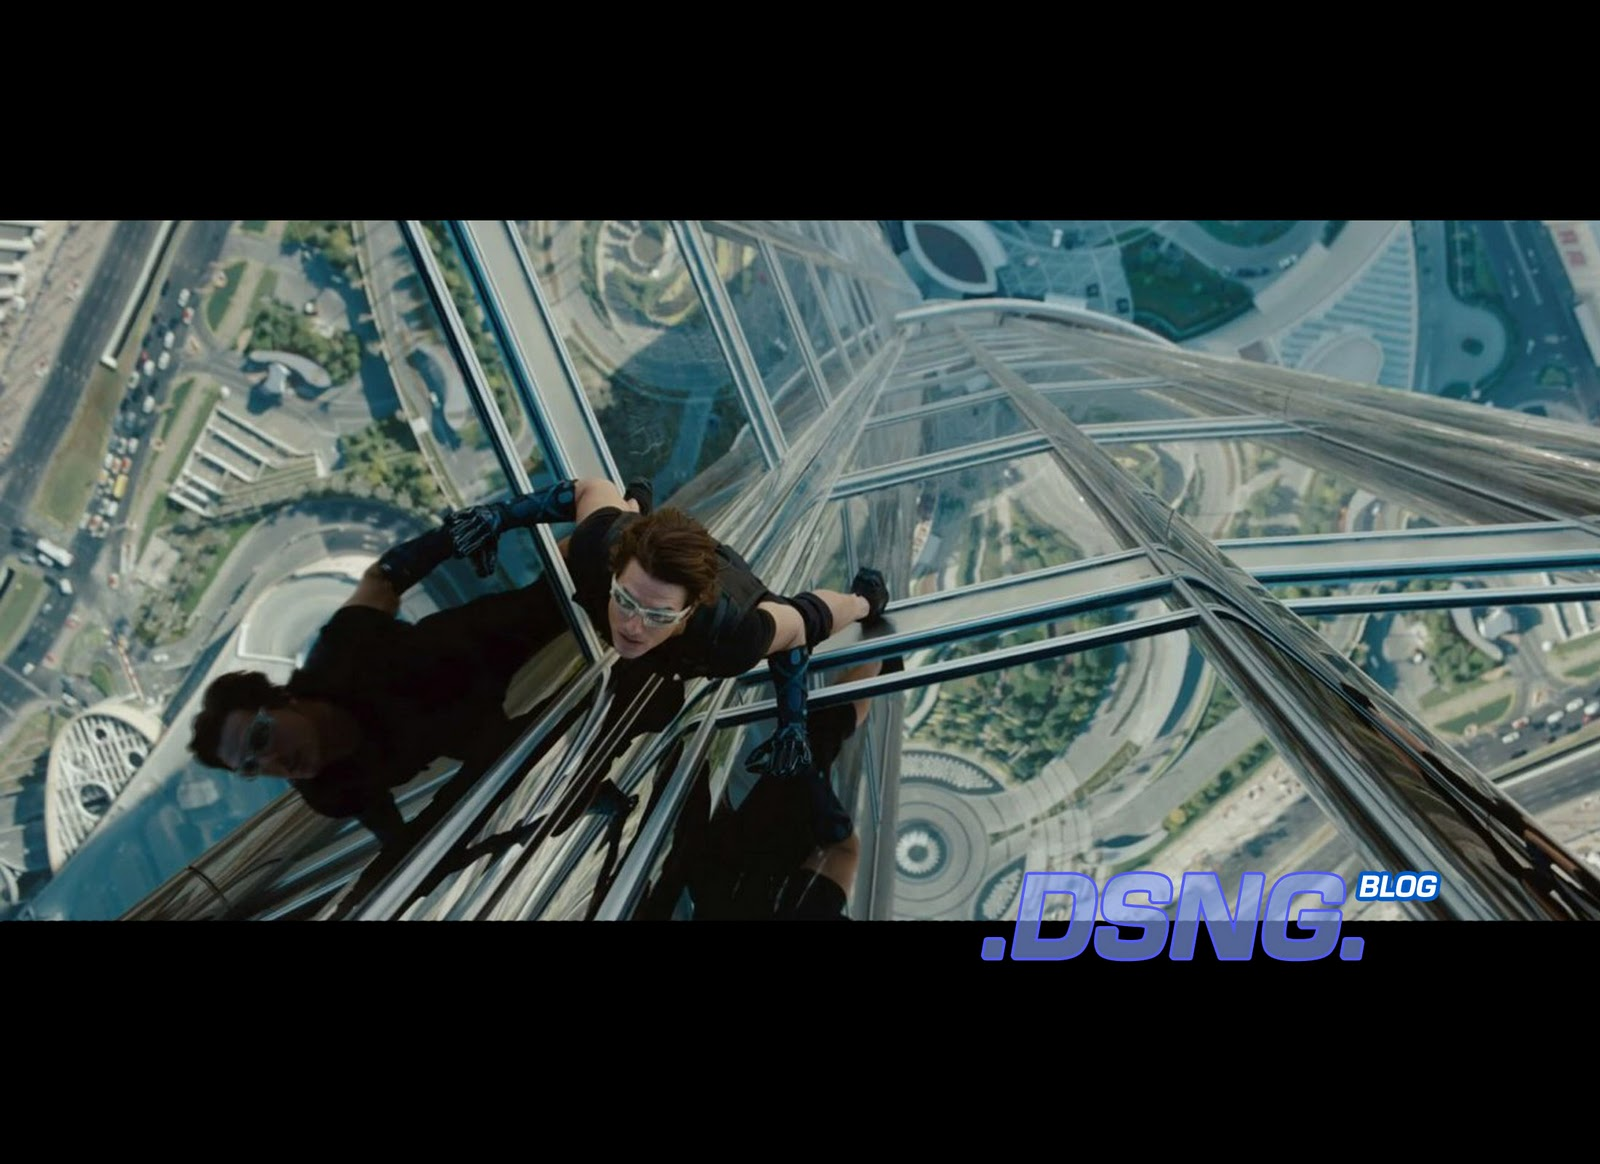 http://1.bp.blogspot.com/-GfPGBQedzT4/TrYKZeeKEmI/AAAAAAAACCc/QTBhM9Y7_cw/s1600/Mission+Impossible+Ghost+Protocol+official+Production+Still-2+climb+climbing+worlds+tallest+building+behind+the+scenes+Tom+Cruise.jpg